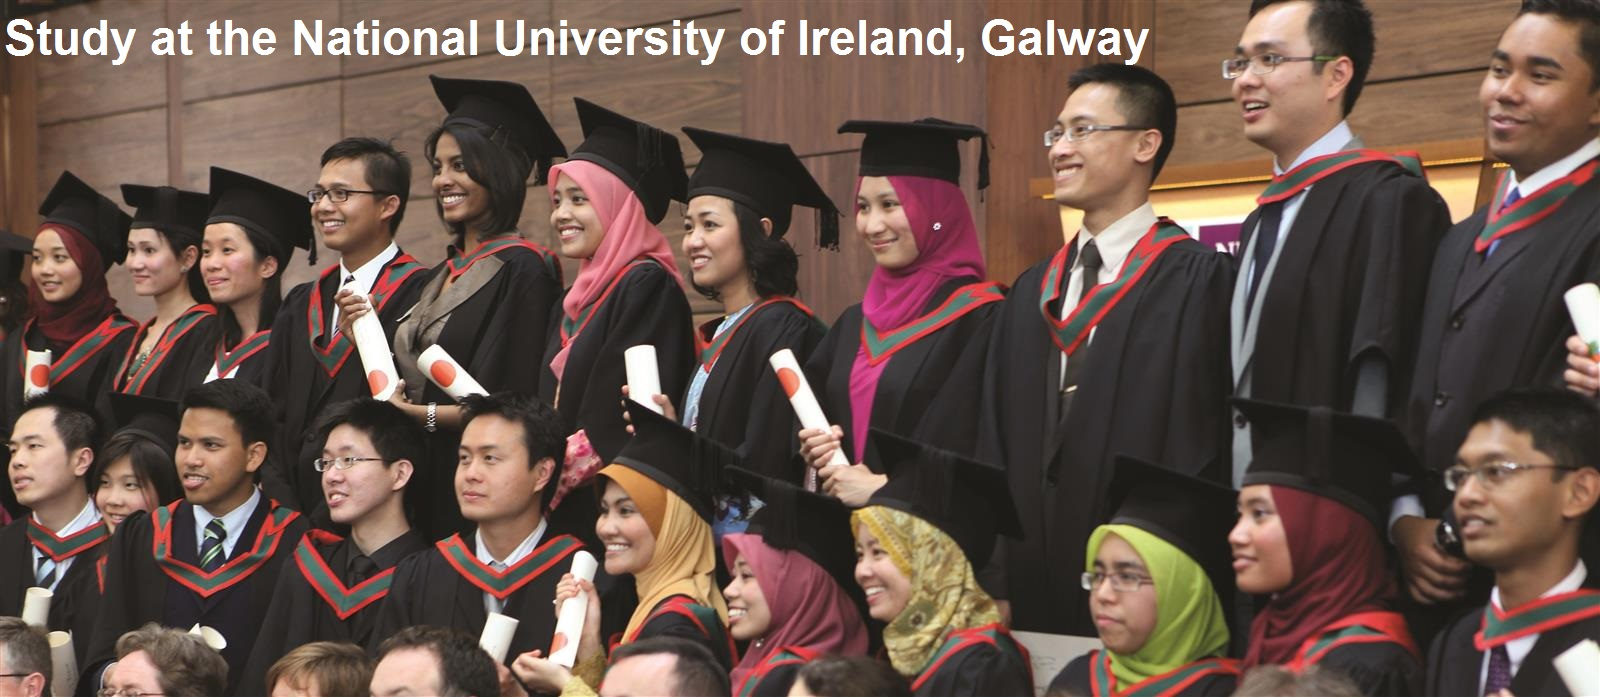 Study at the National University of Ireland, Galway